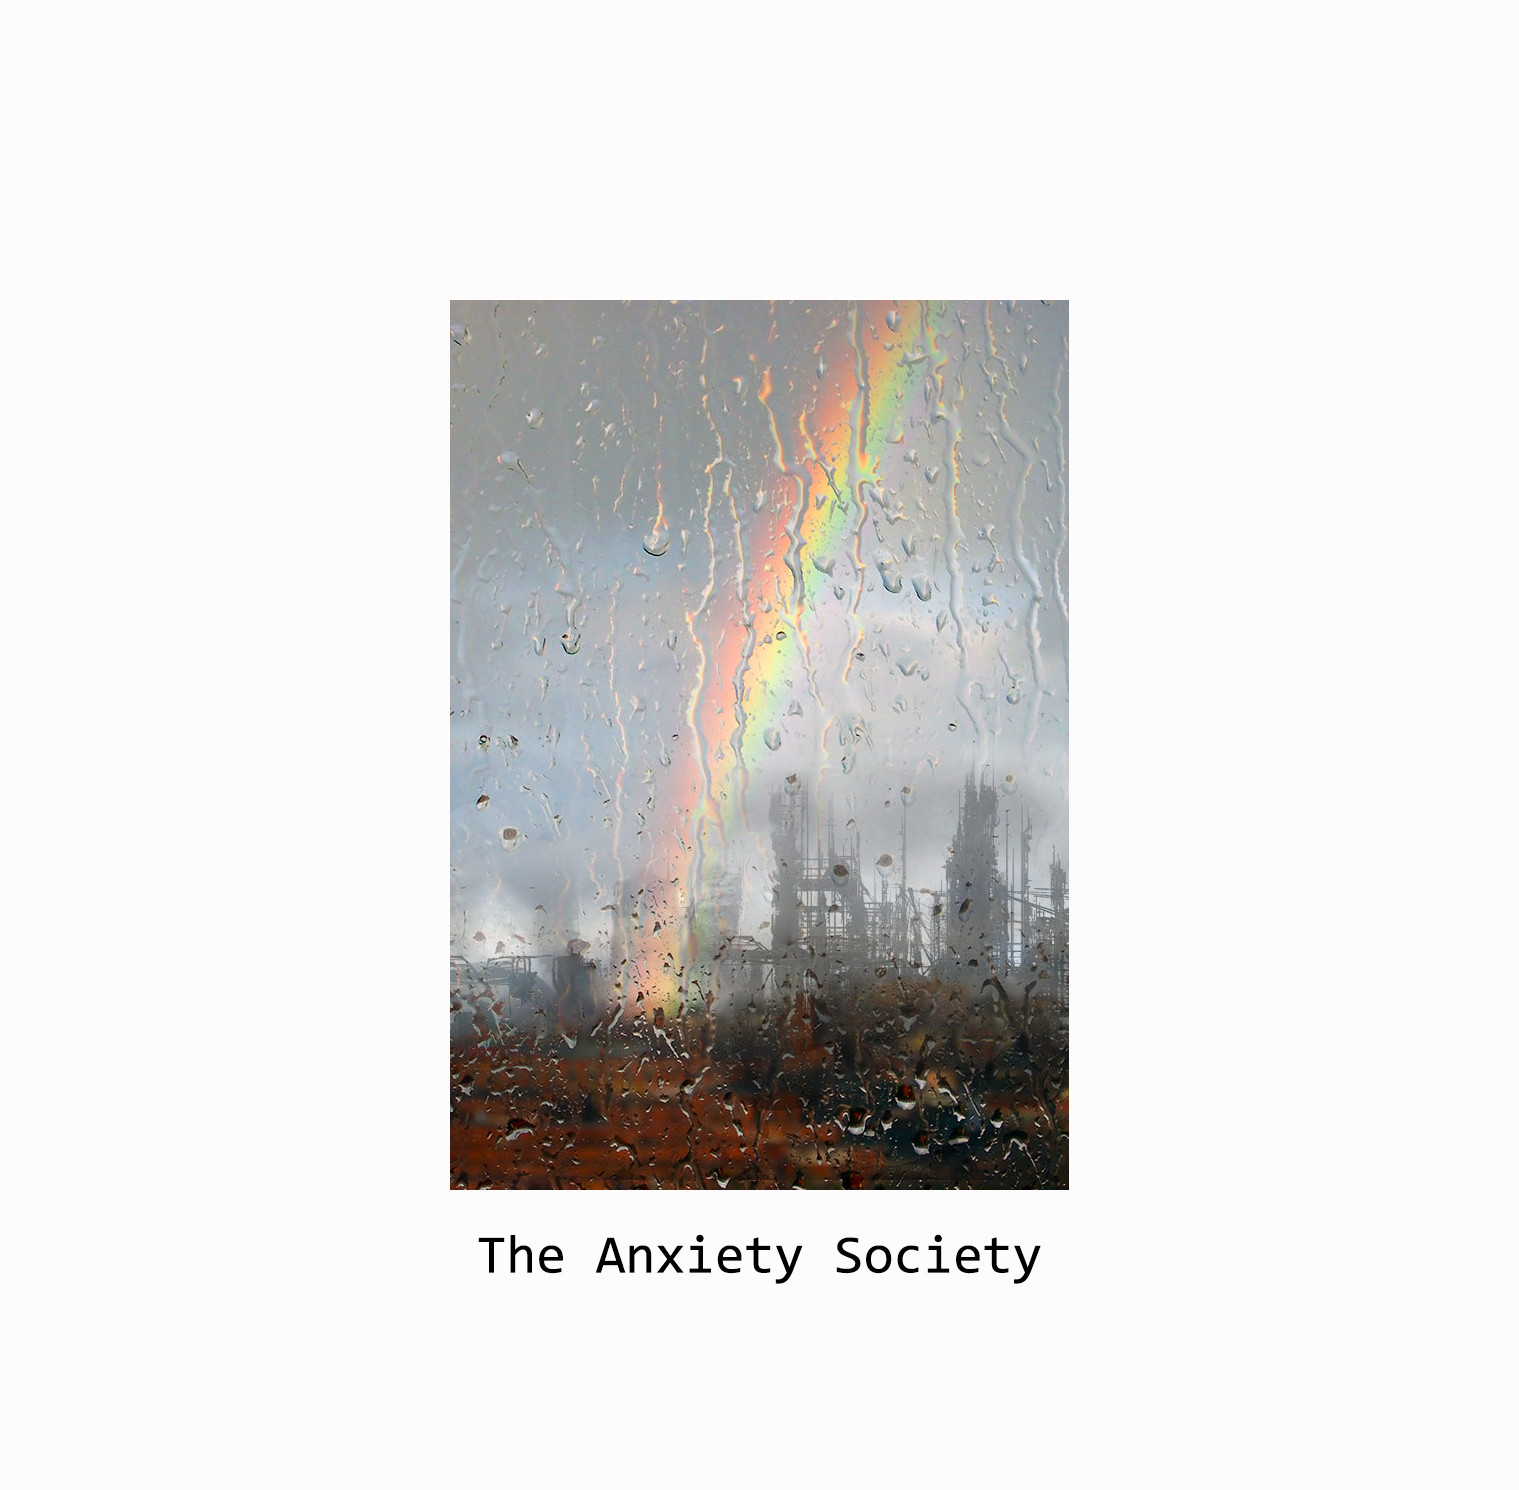 The Anxiety Society Album Cover V6_4 w_Canvas.jpg